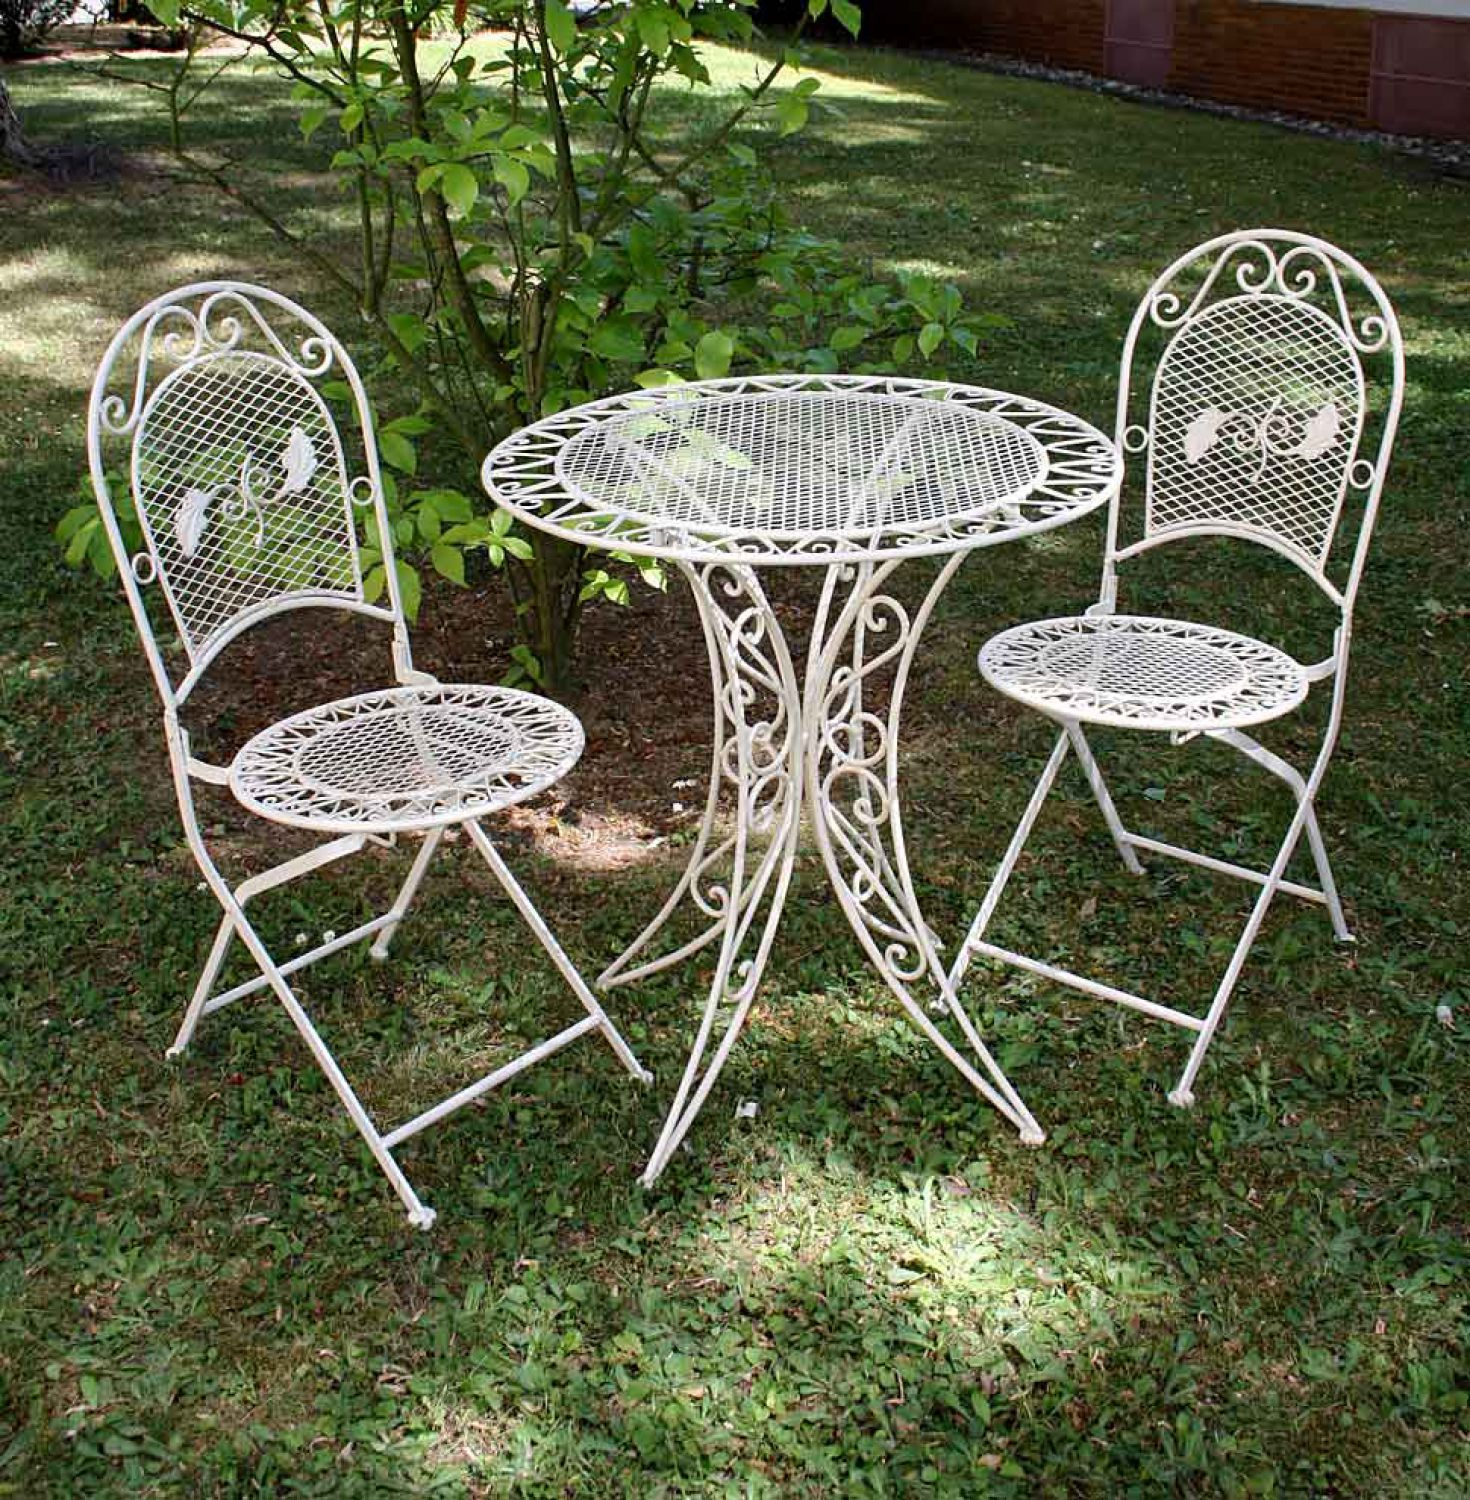 Vintage Wrought Iron Table And Chairs Balcony Garden